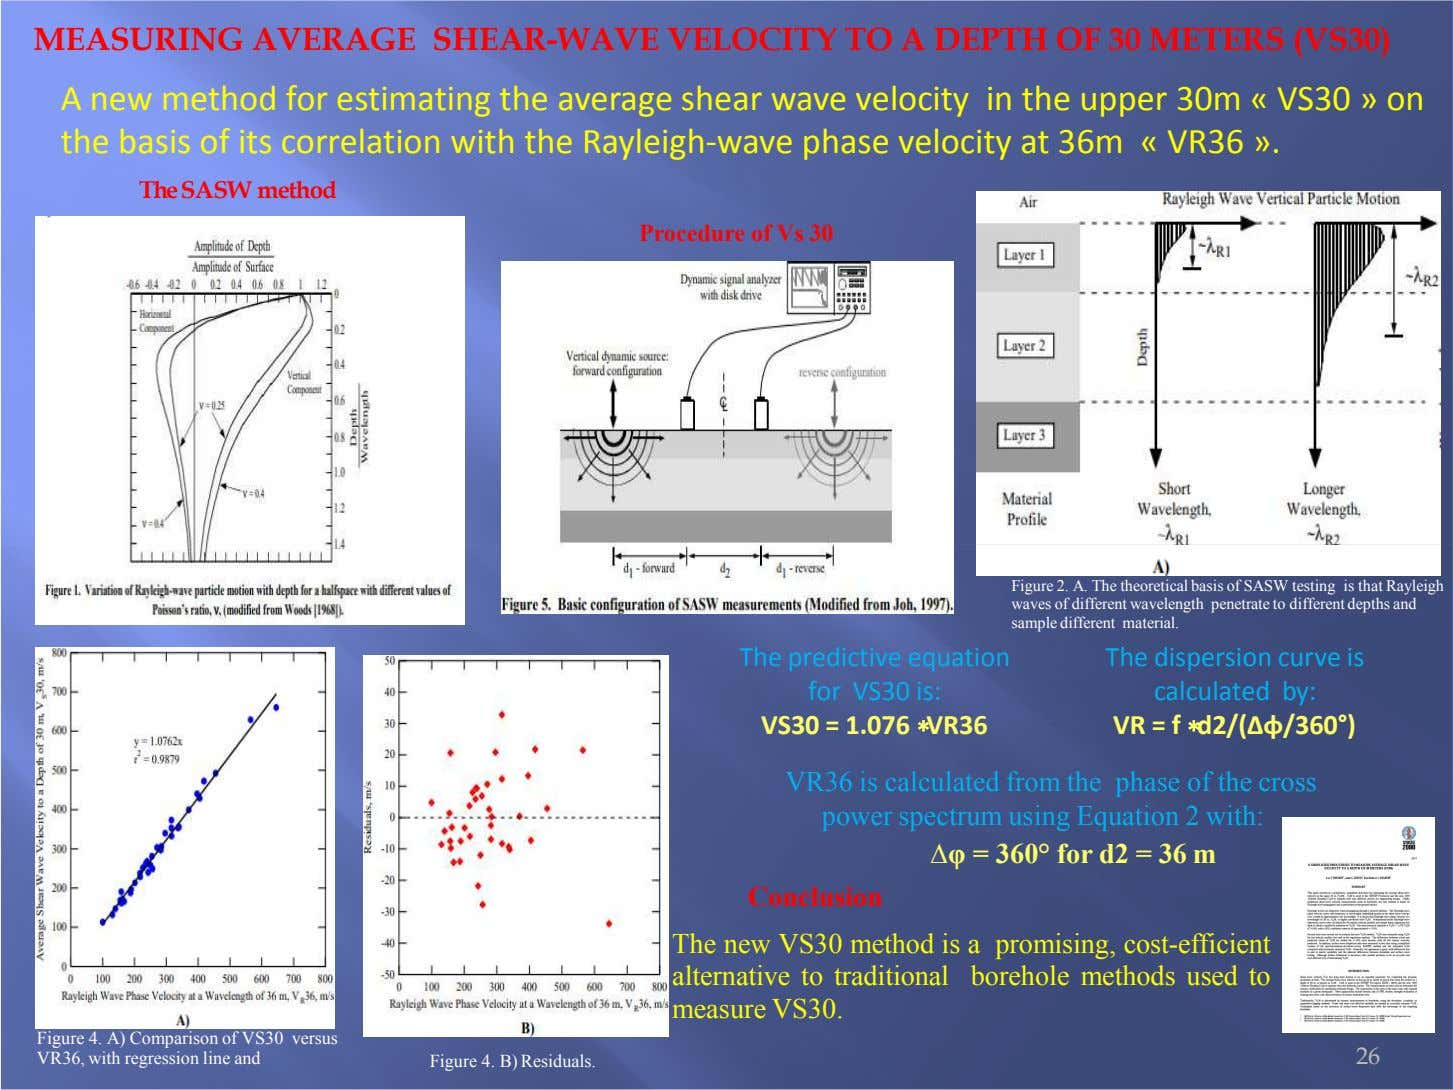 MEASURING AVERAGE SHEAR-WAVE VELOCITY TO A DEPTH OF 30 METERS (VS30) A new method for